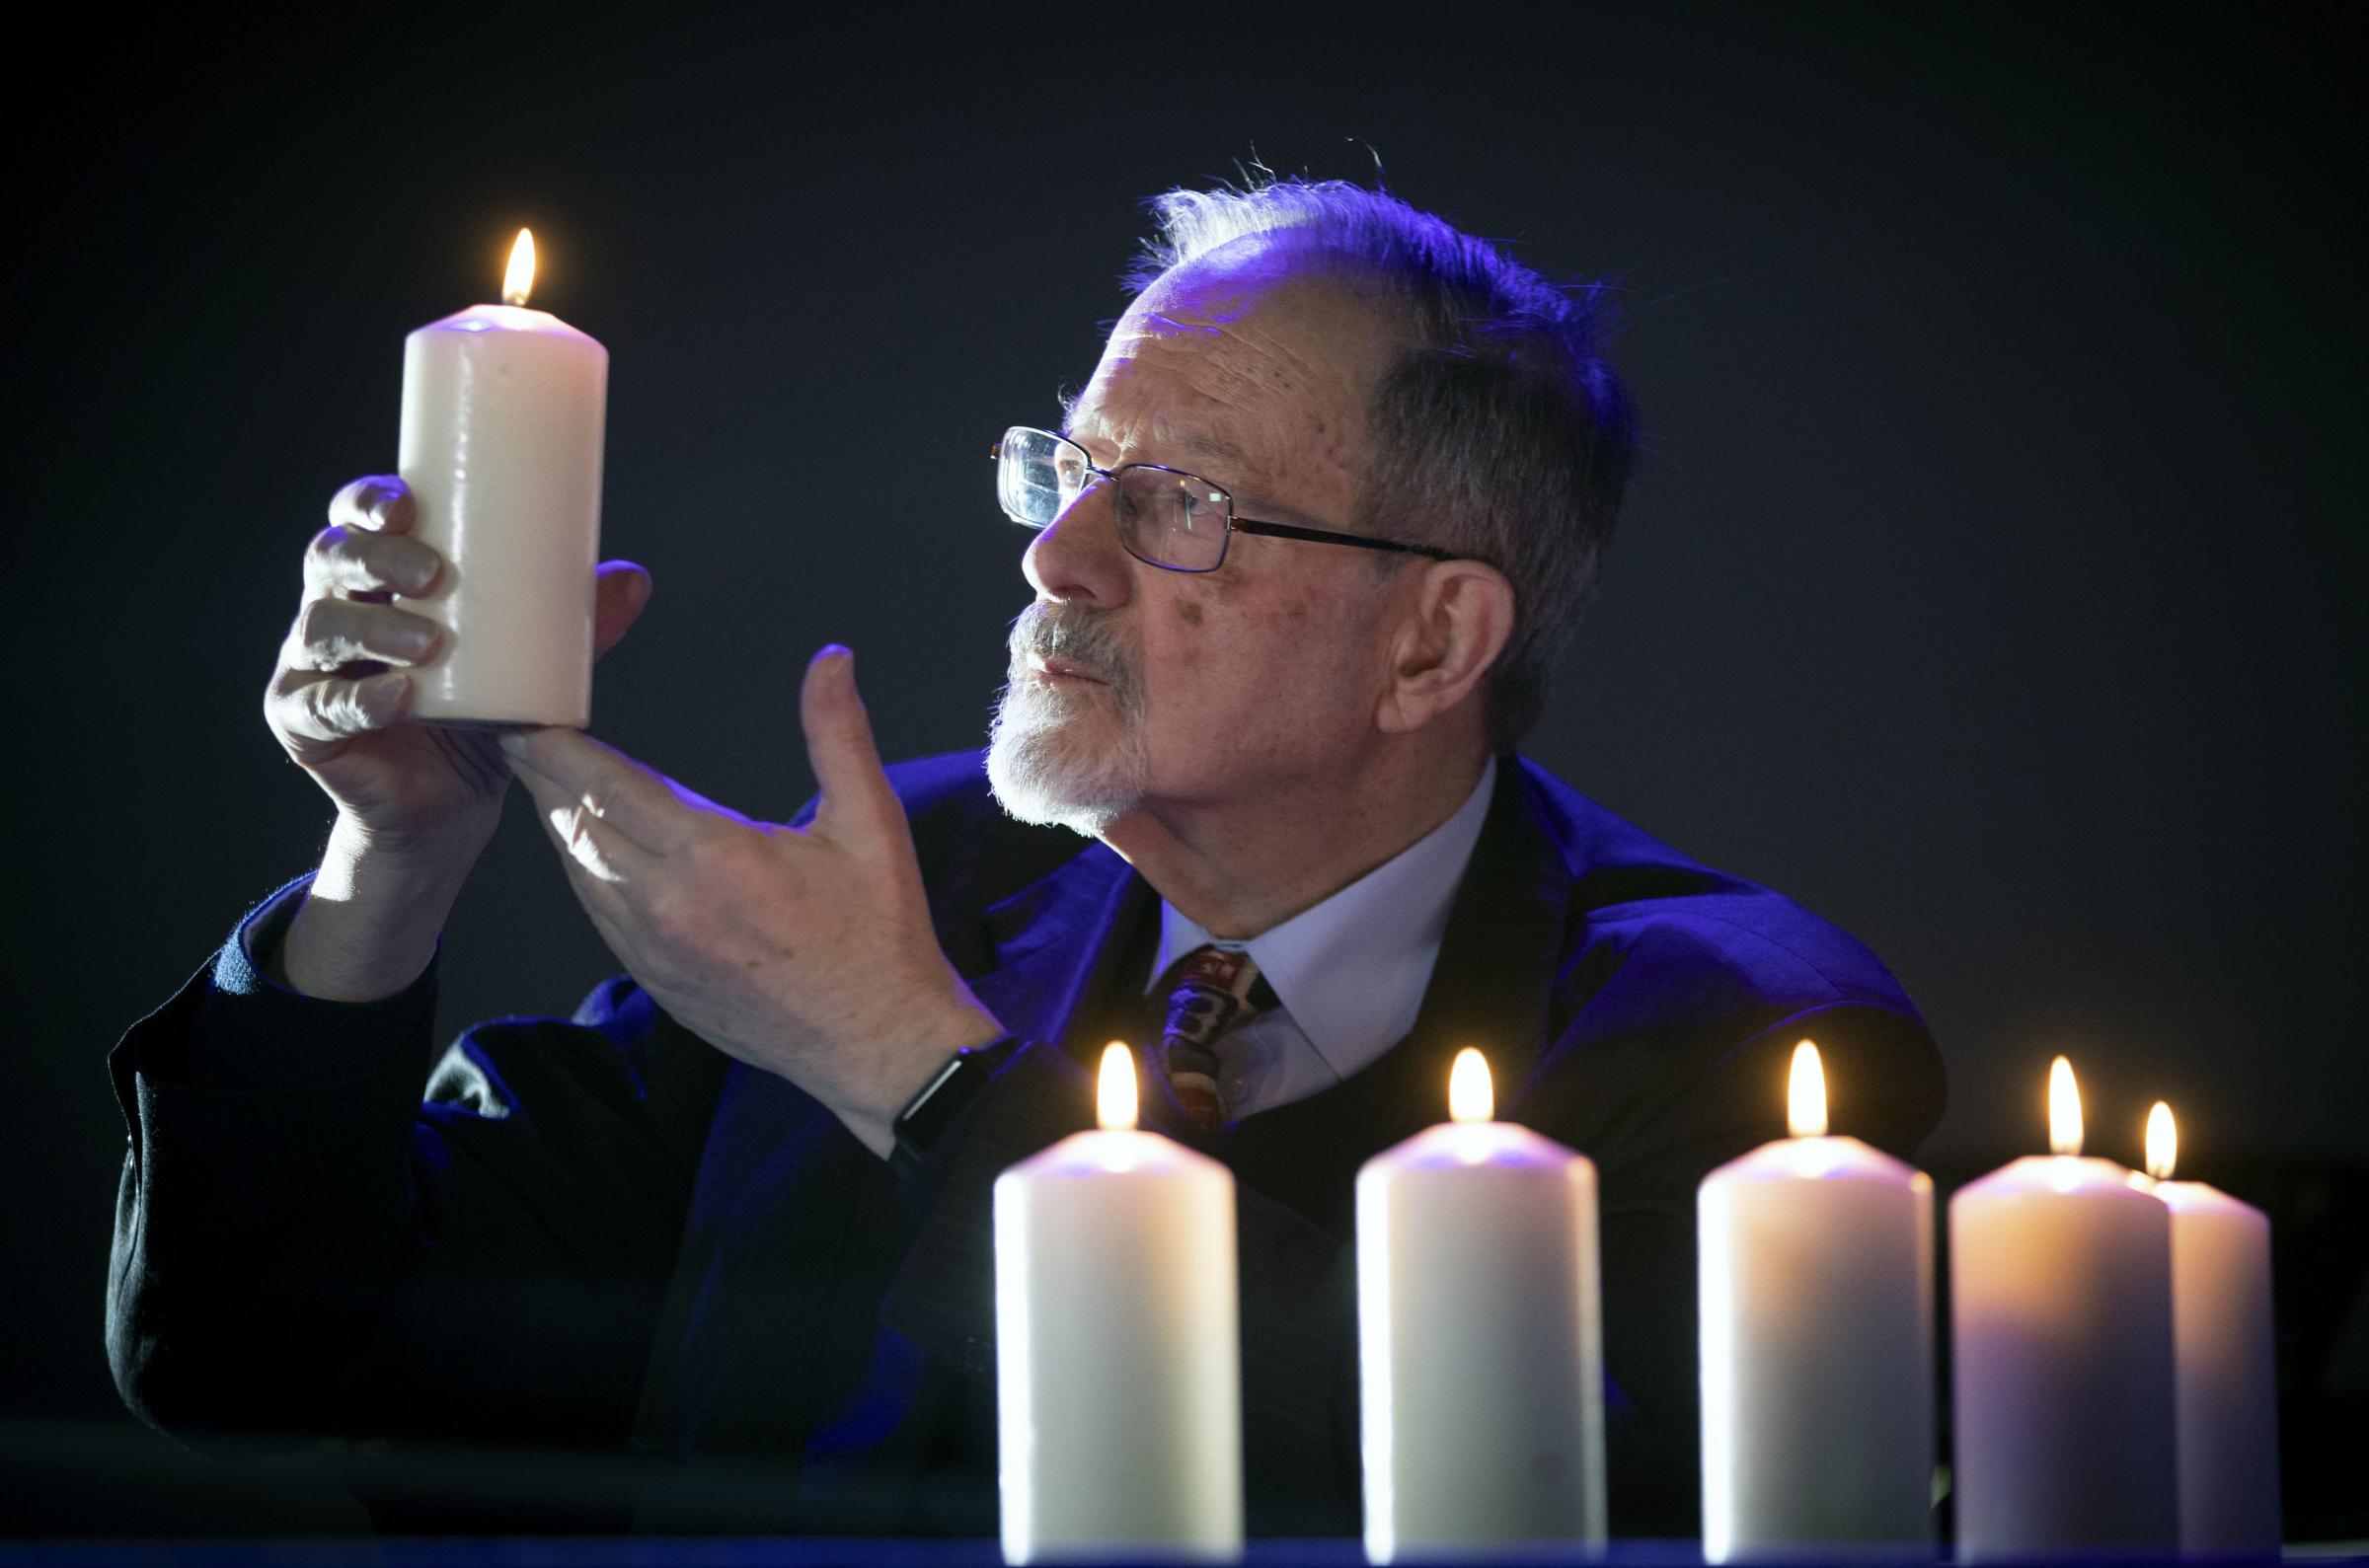 Holocaust survivor, Martin Stern, lights the candles to mark Holocaust Memorial Day